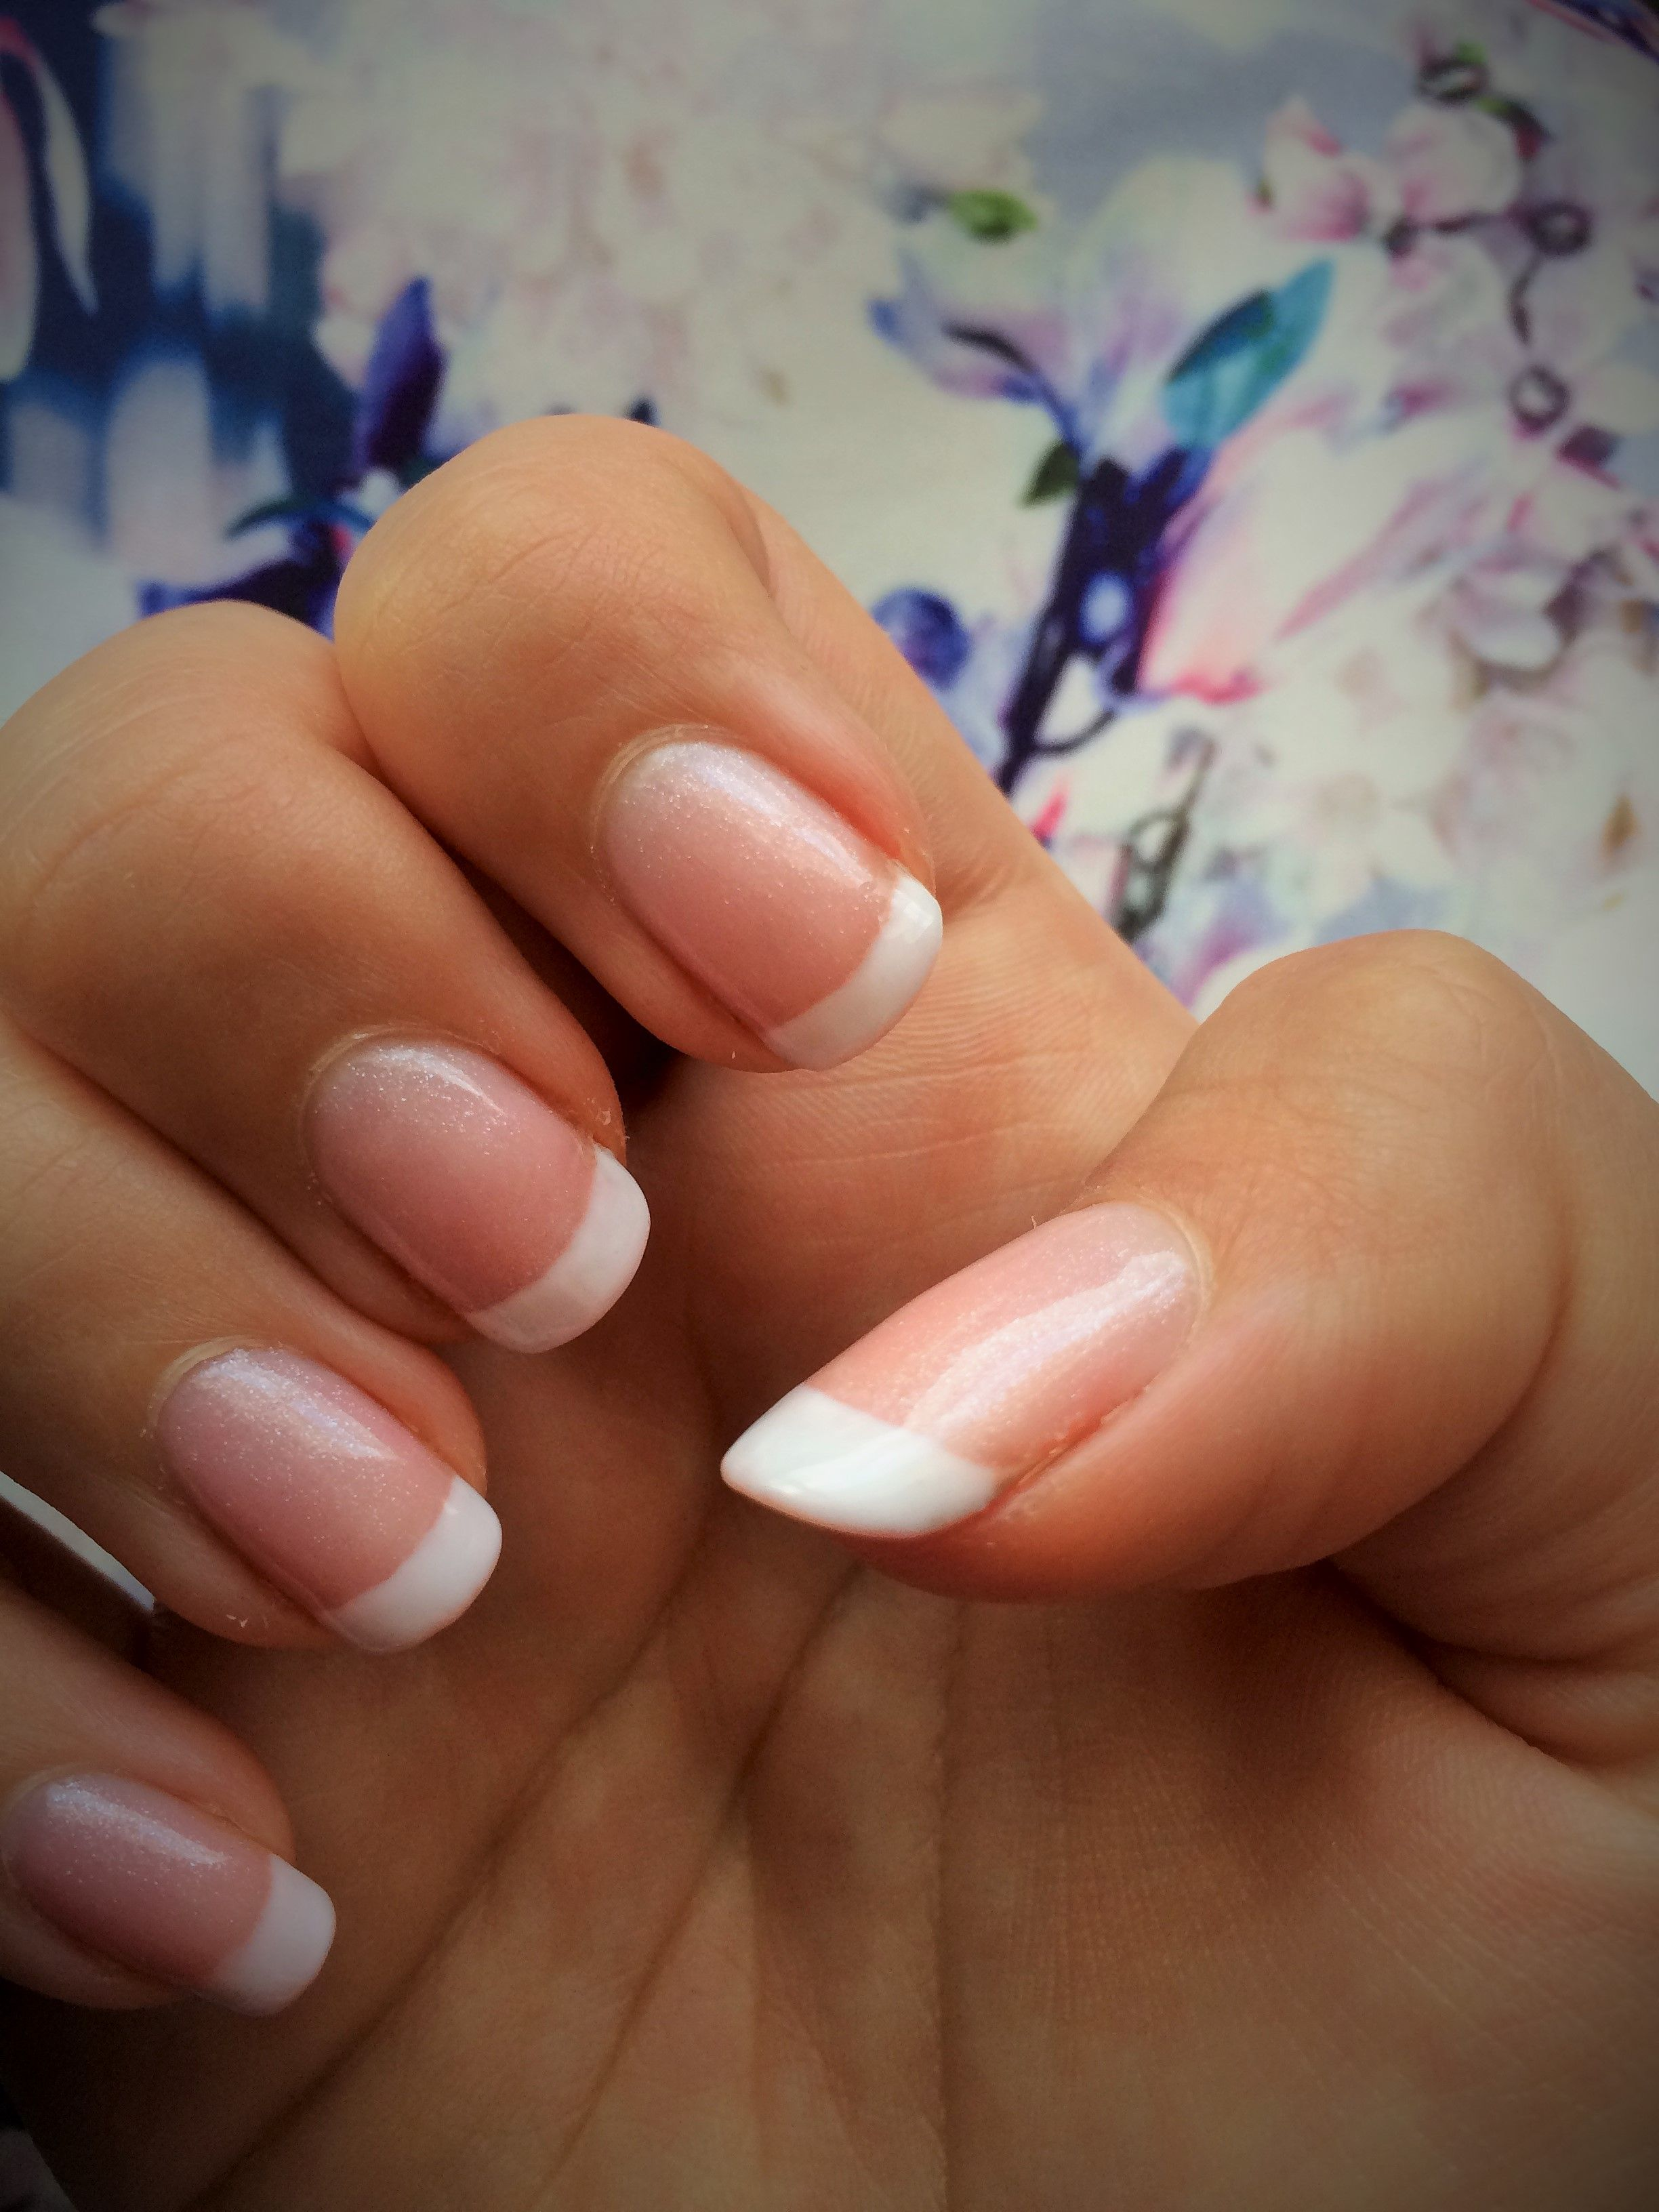 CND SHELLAC Grapefruit sparkle base studio white tip